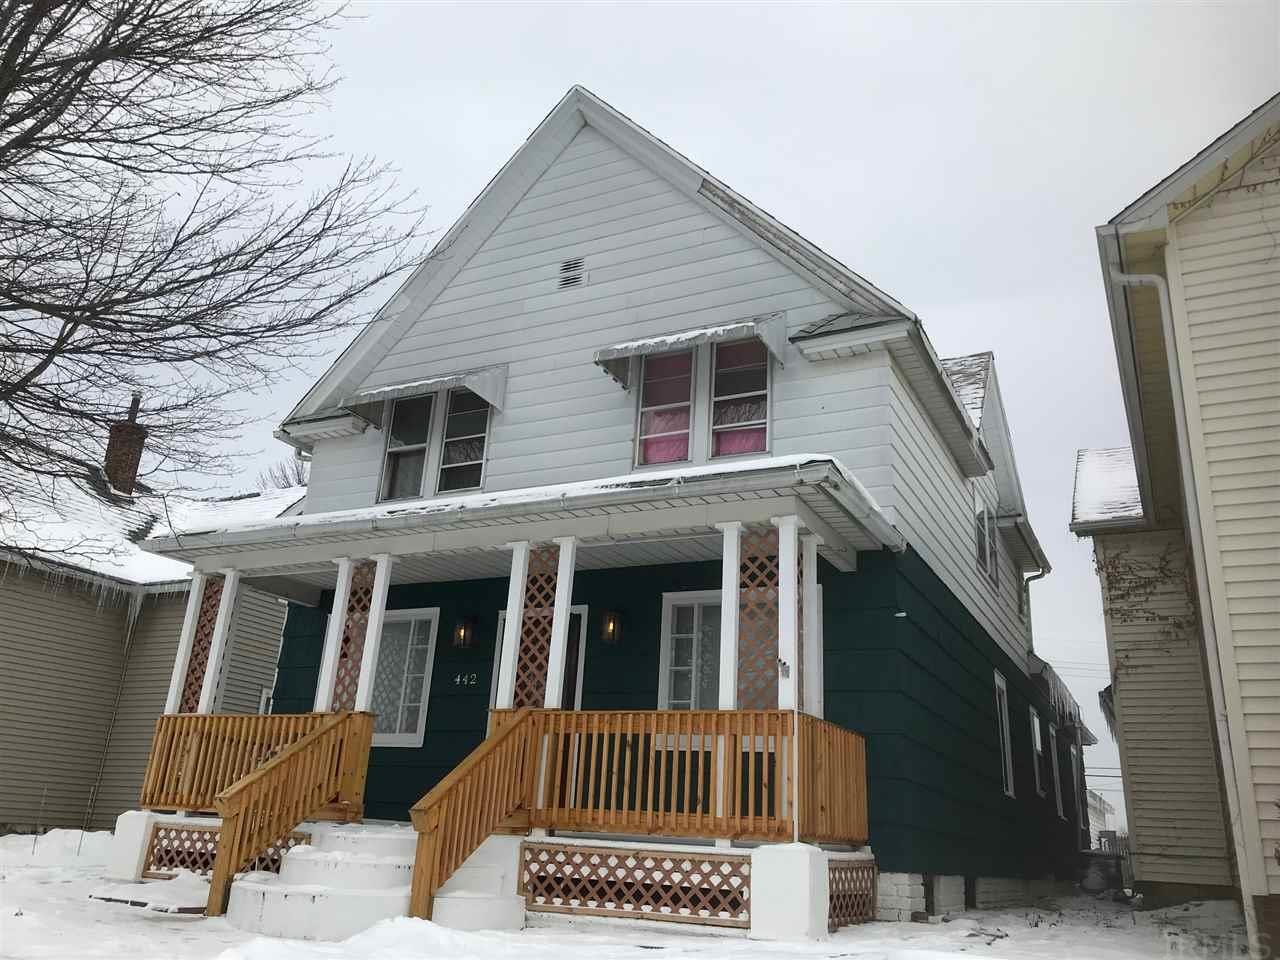 442 S Grant South Bend, IN 46619